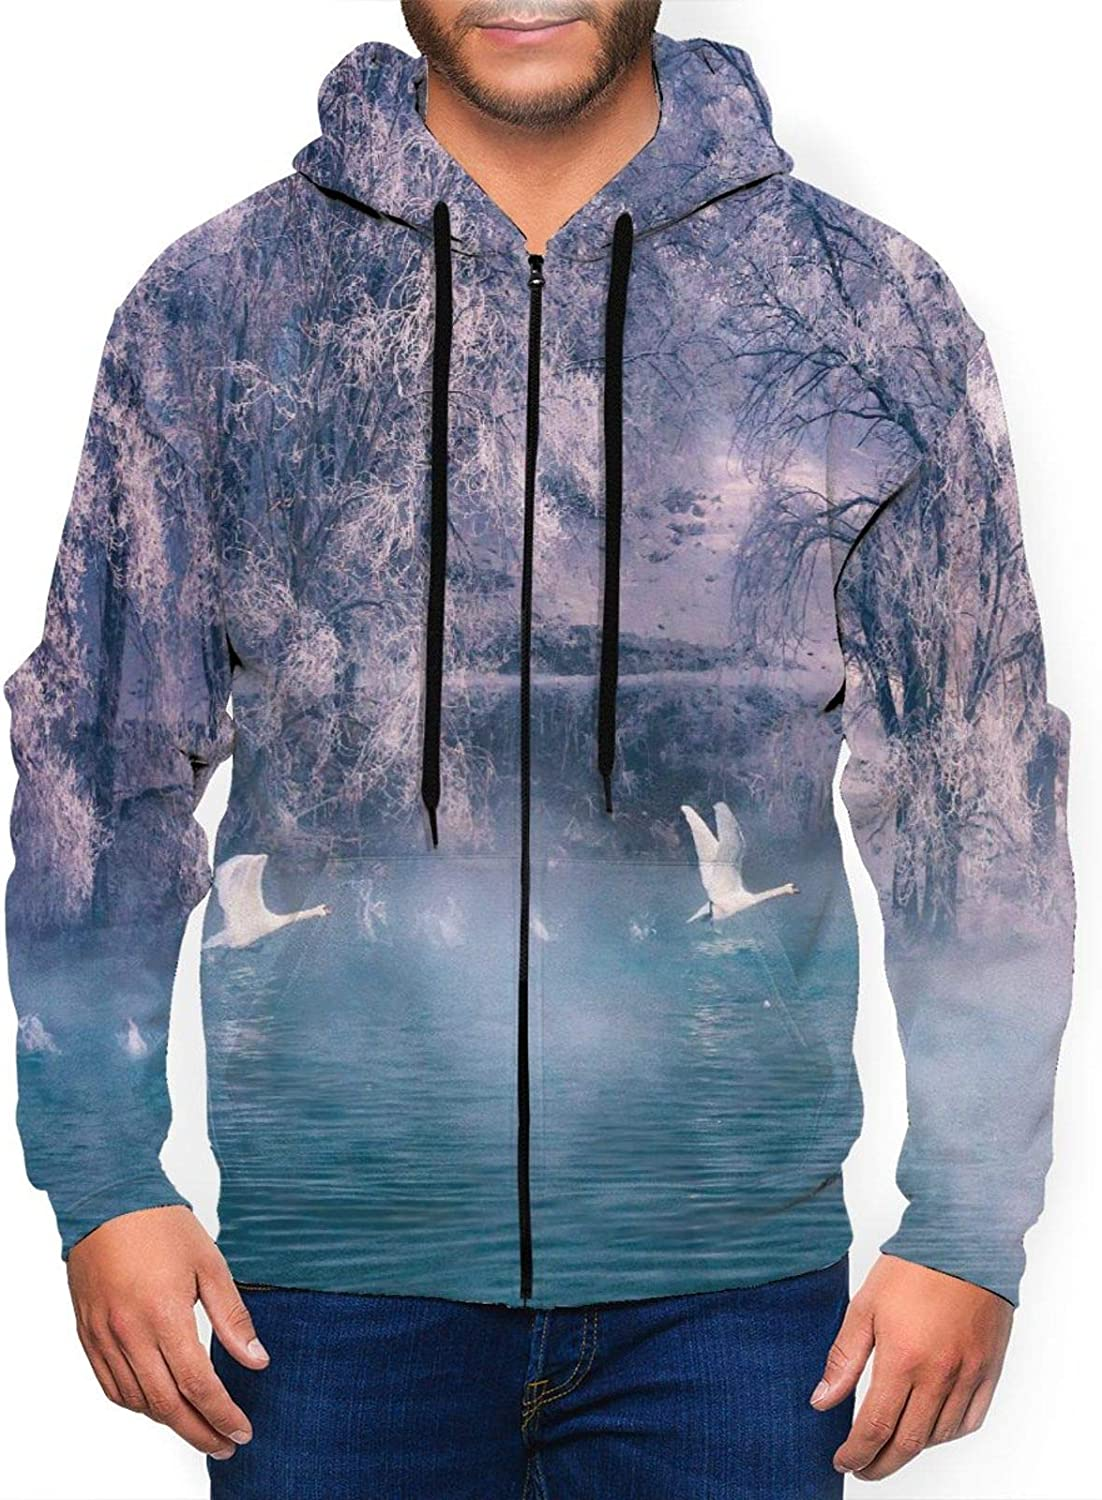 Wozukia Soldering White Swan Men Hoodies Hot On Springs Super beauty product restock quality top Aestheticis Flying